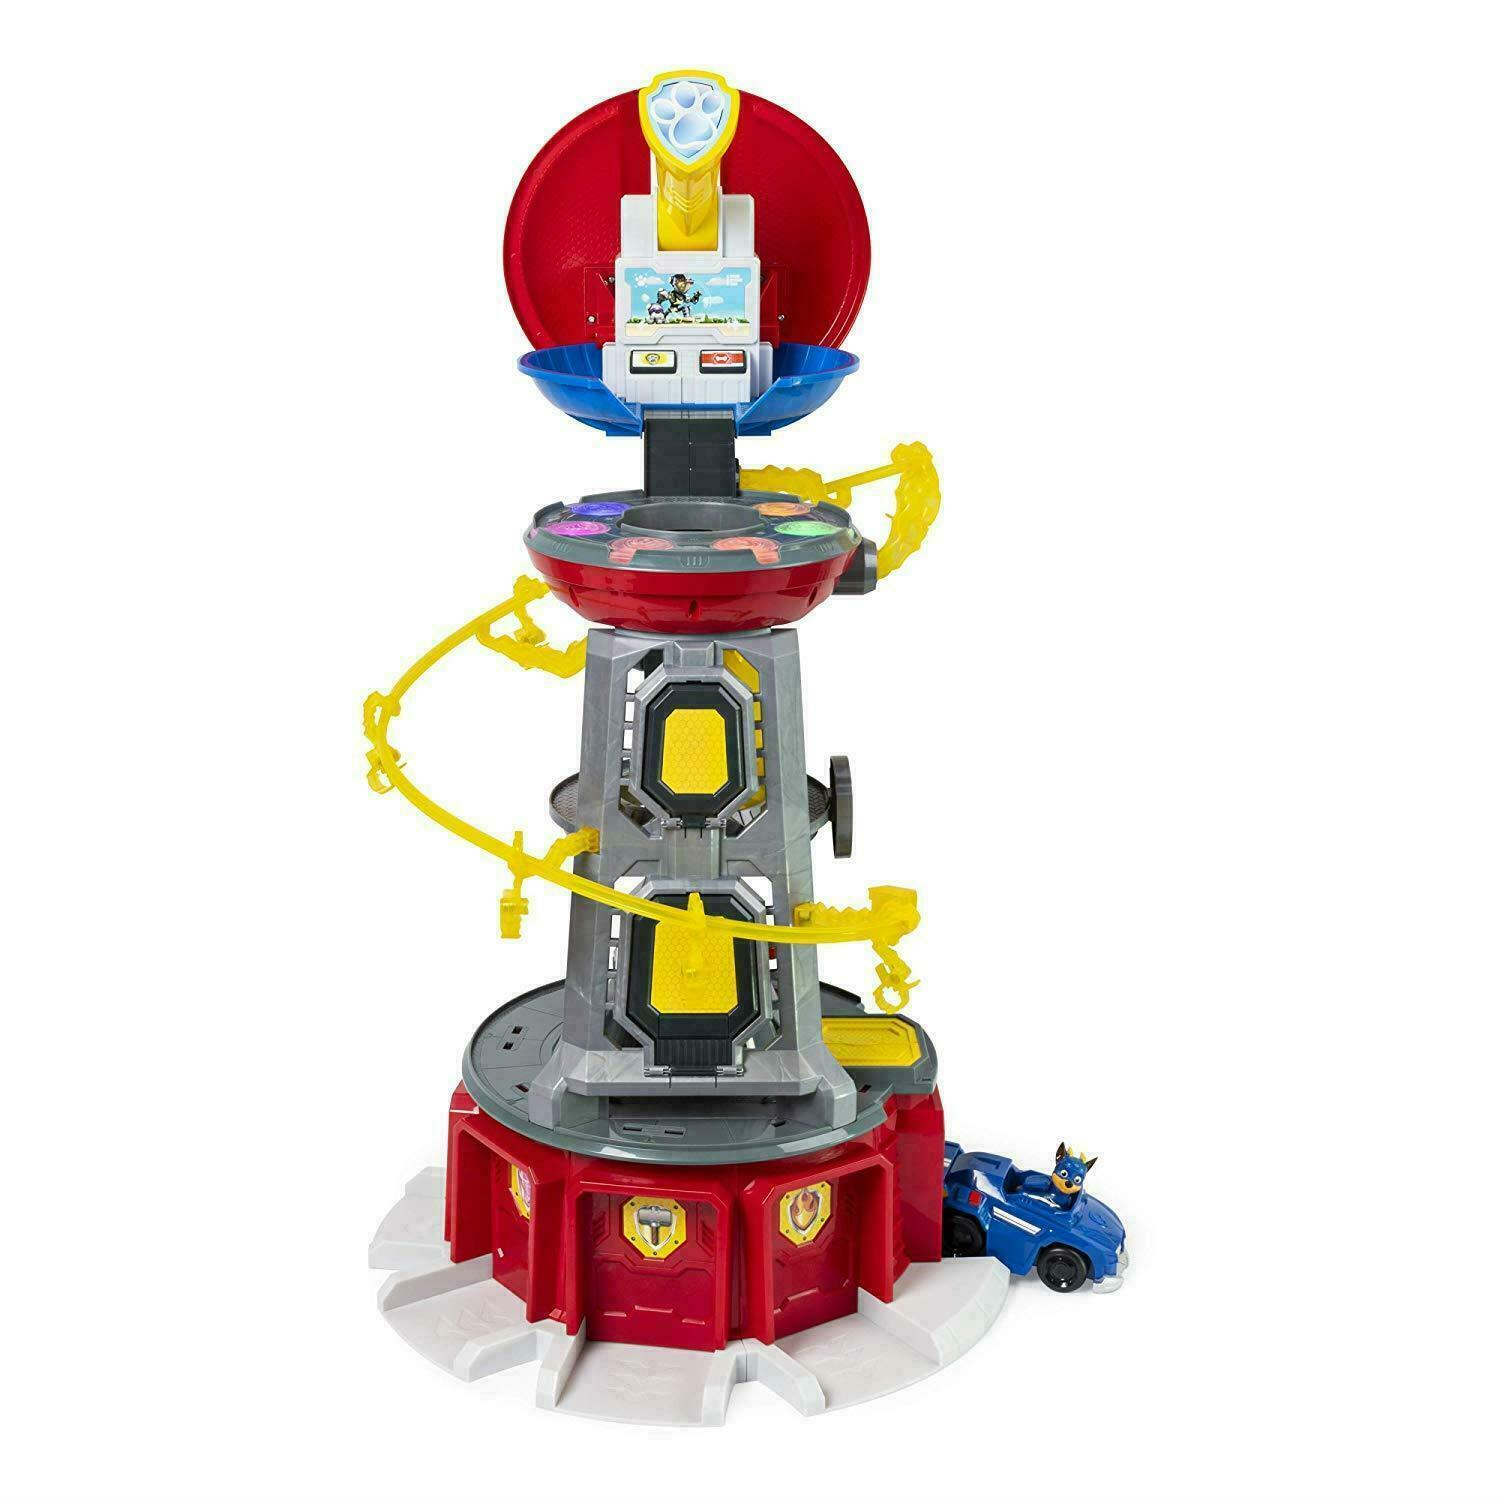 Paw Paw Paw Patrol Mighty TOYS kids gift Super Paws Lookout Tower Playset Light Sound UK 720